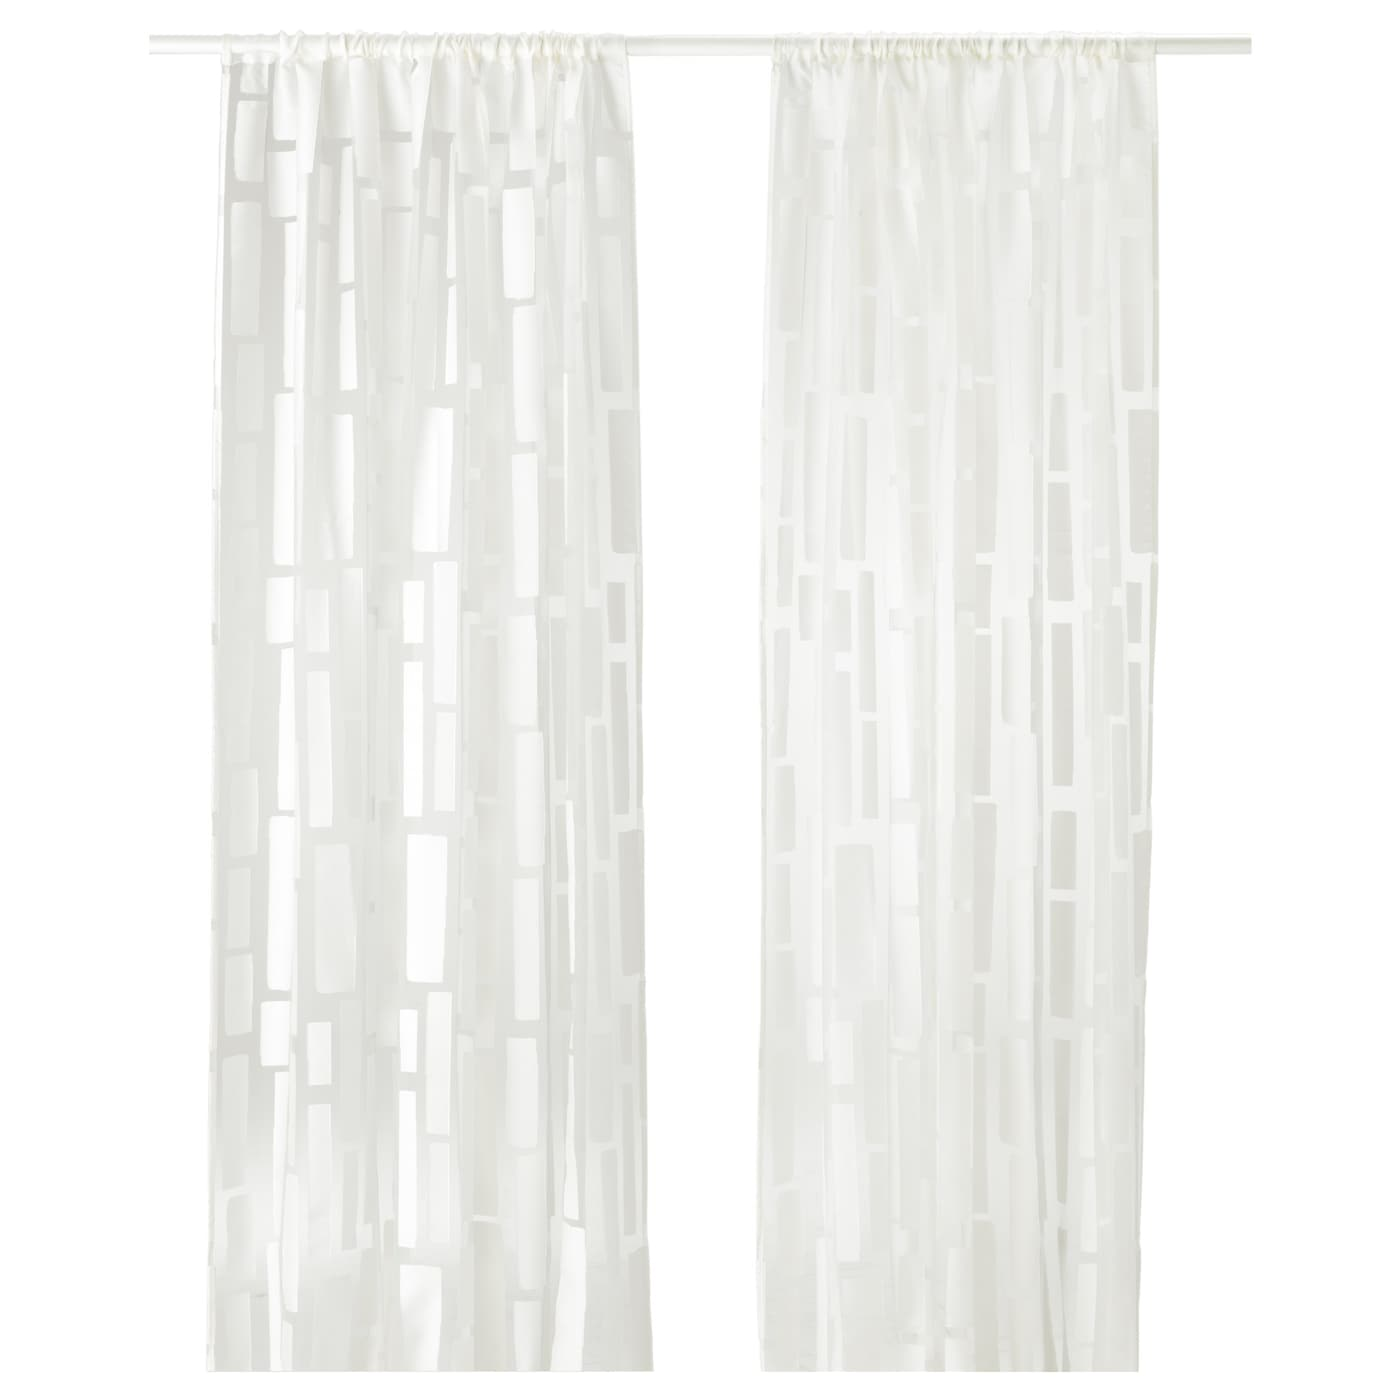 tfile for black furniture best drapes uncategorized trends lill curtain curtains ideas white pict panel and inspirational lace